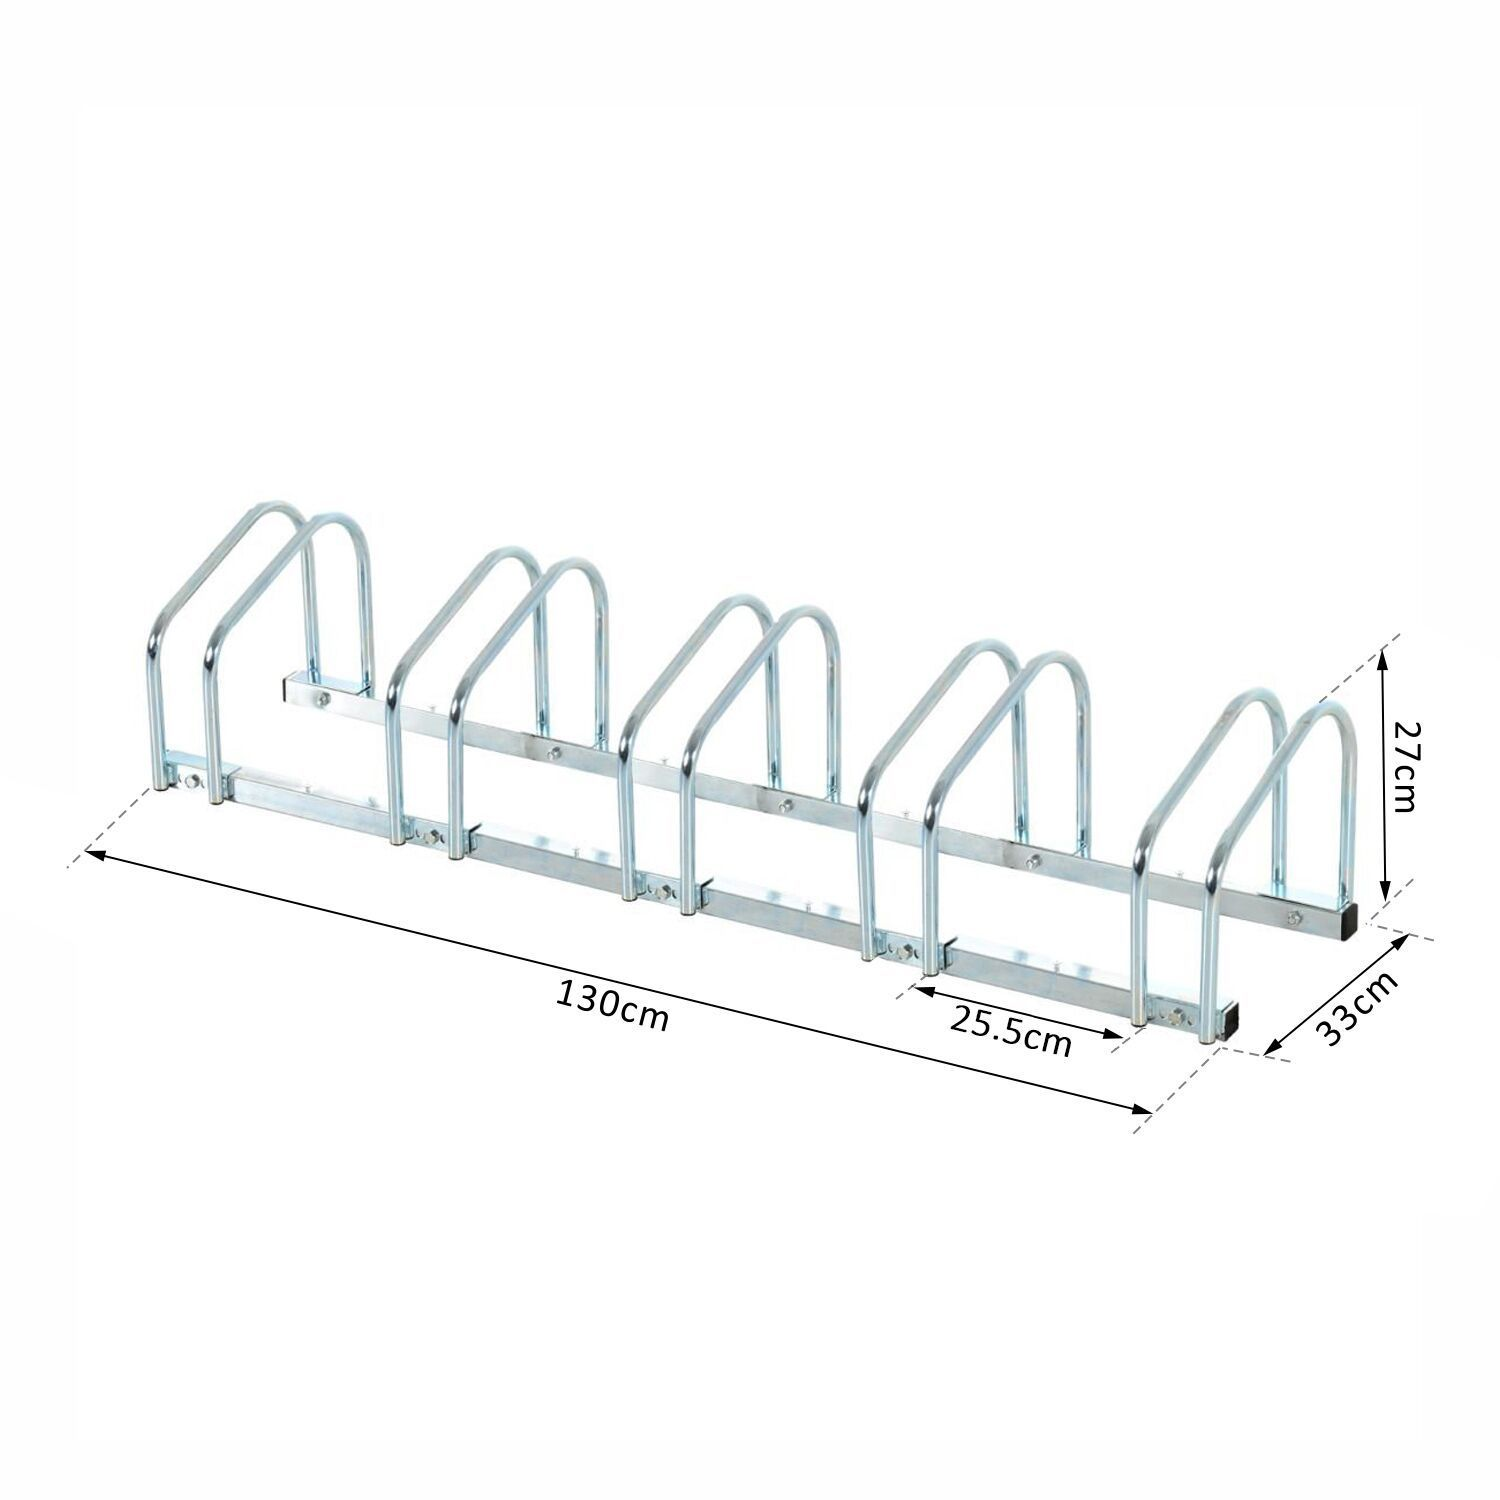 Bicycle-Bike-Parking-Cycle-Floor-Rack-Stand-Storage-Mount-Holder-Steel-Pipe miniatura 21